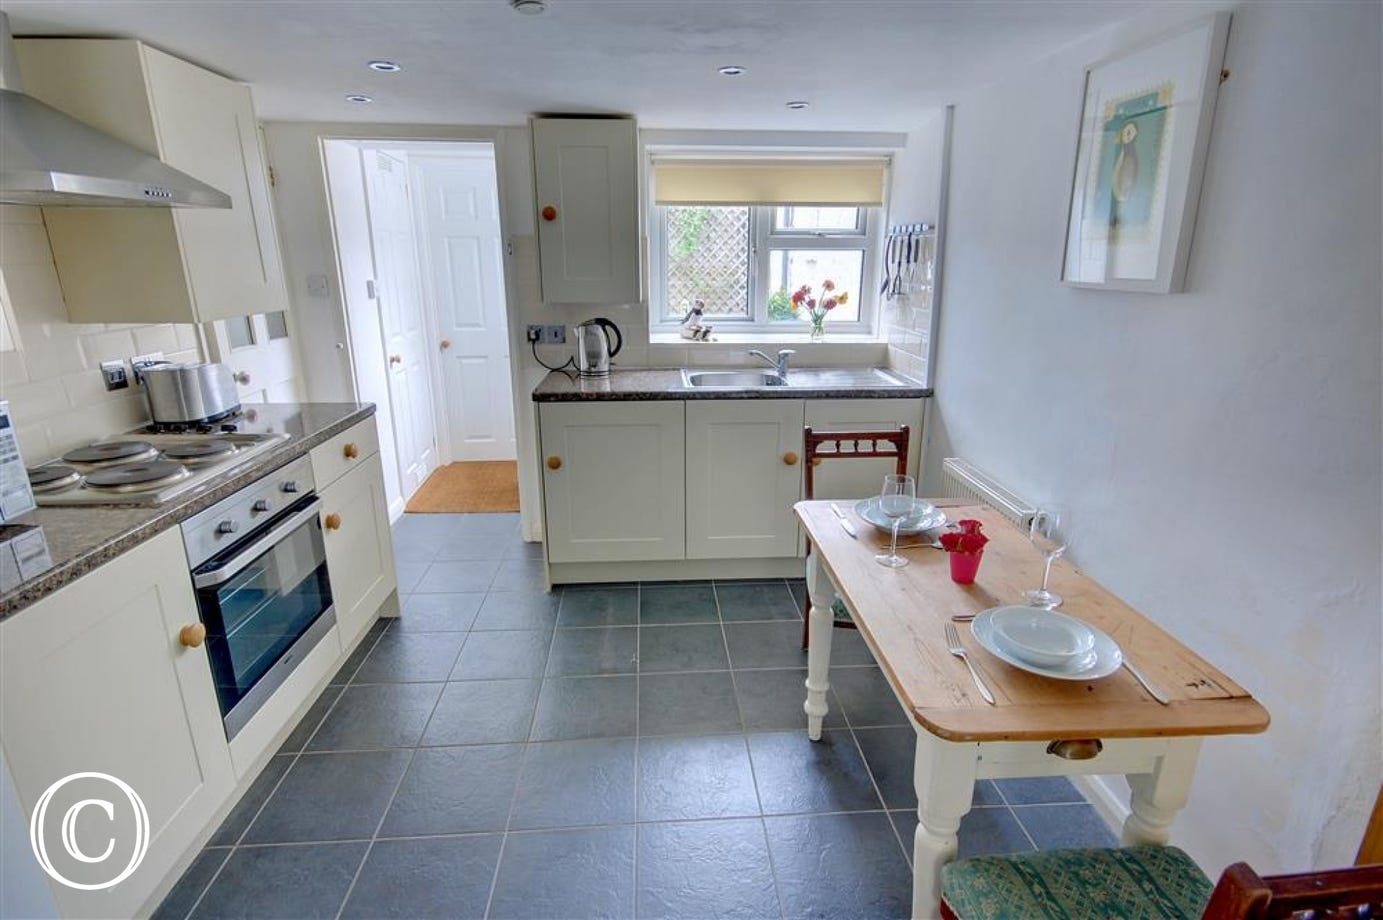 The cream country style kitchen is complemented by attractive grey slate flooring